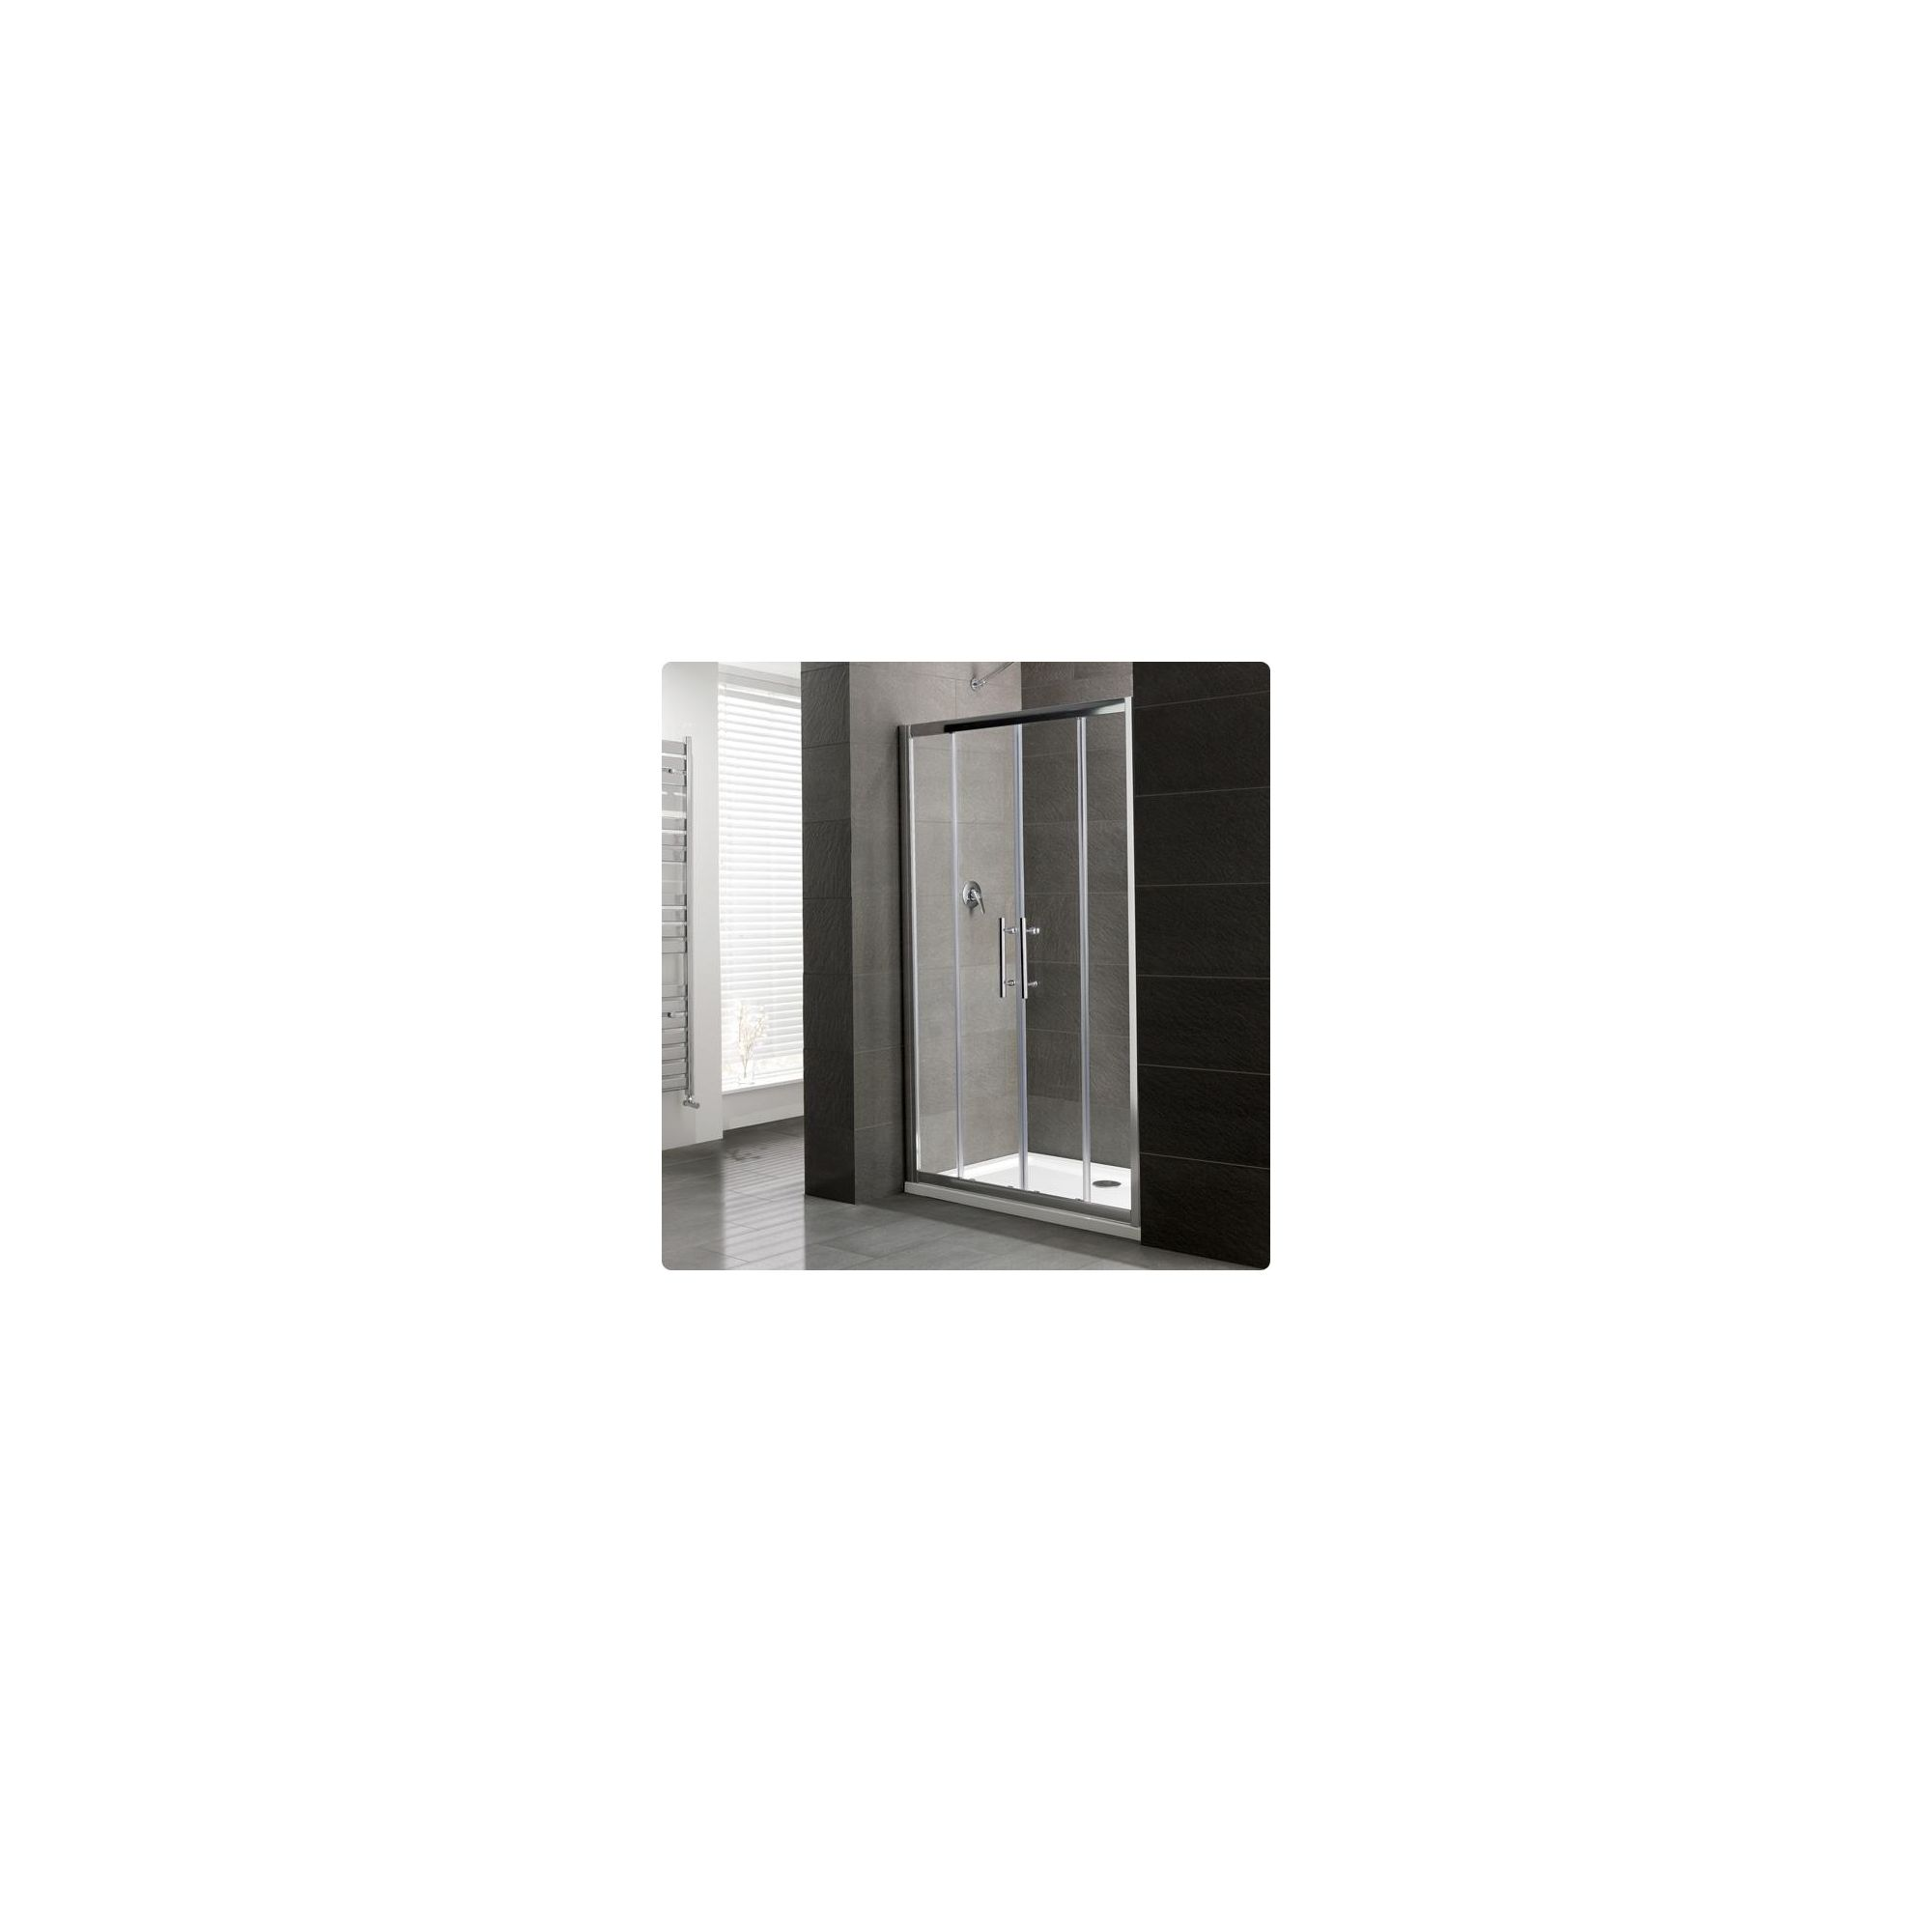 Duchy Select Silver Double Sliding Door Shower Enclosure, 1400mm x 900mm, Standard Tray, 6mm Glass at Tesco Direct